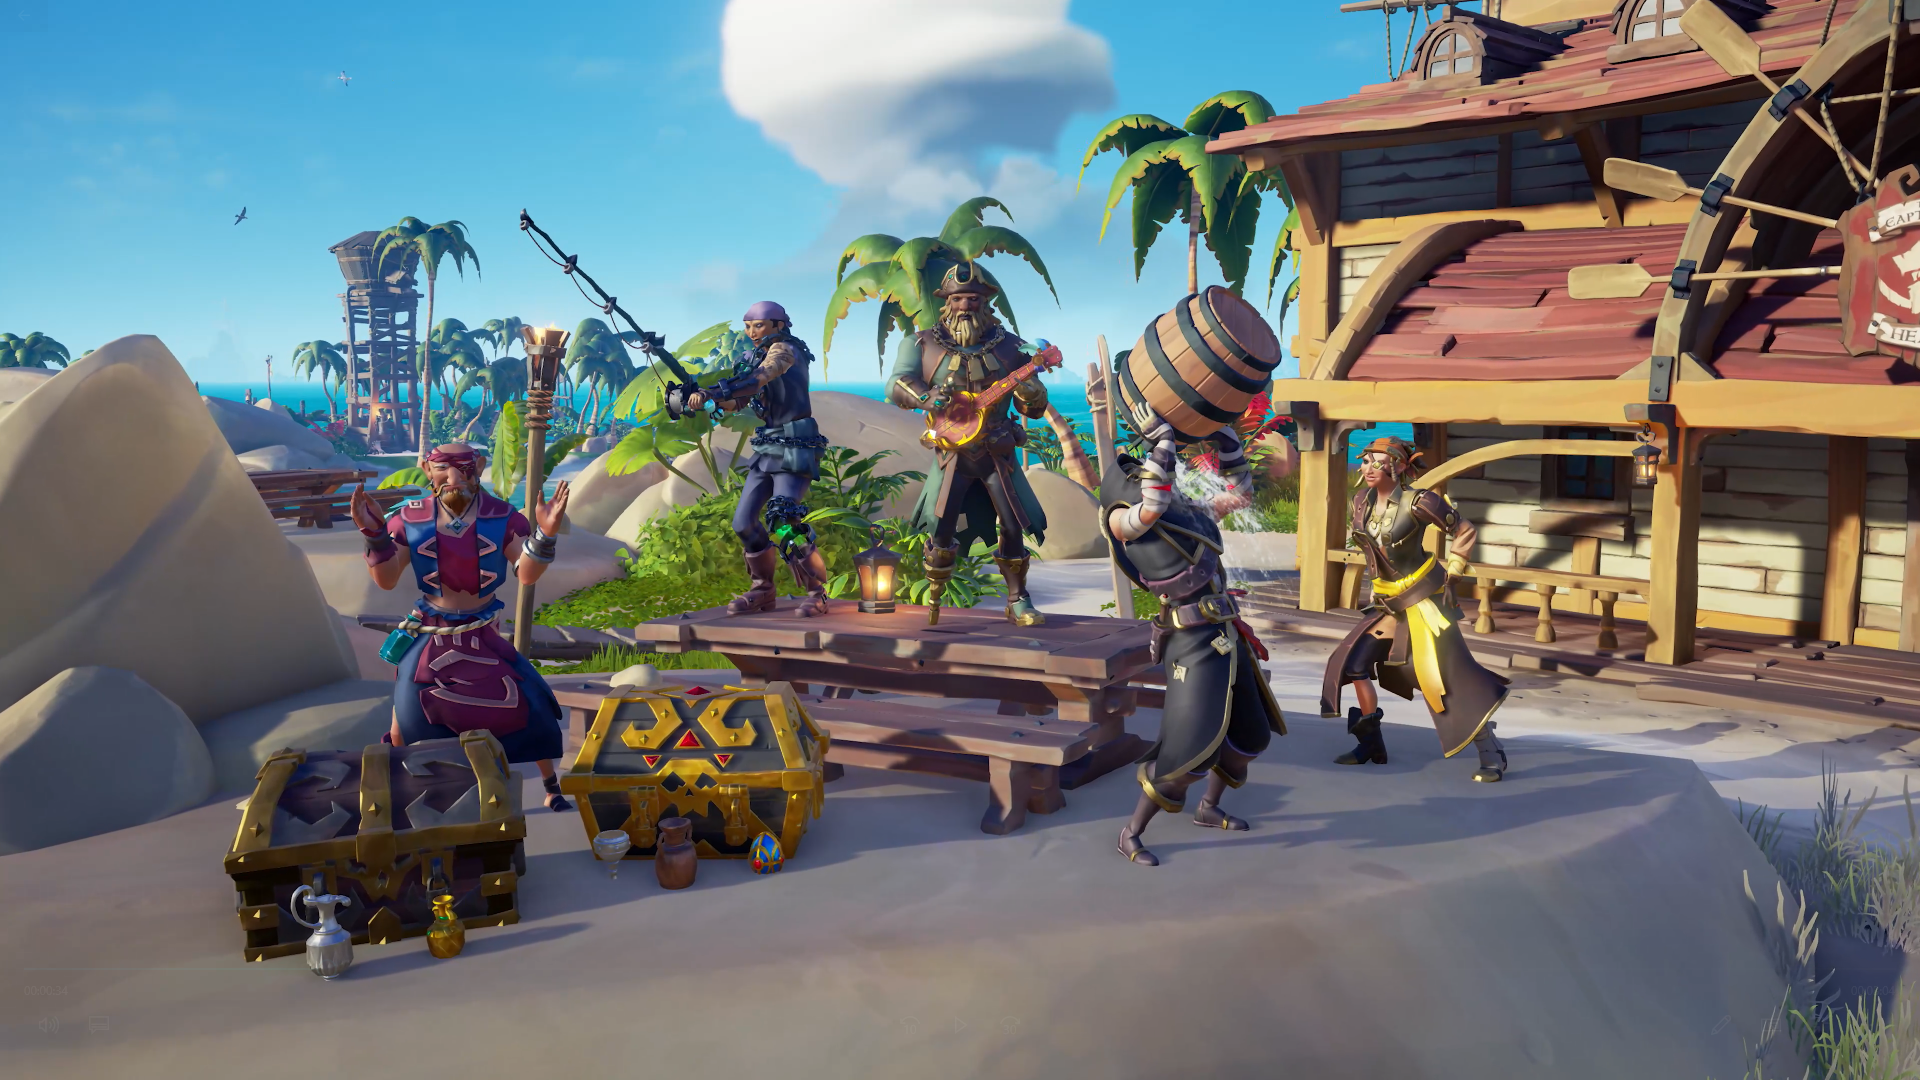 saisons guide sea of thieves